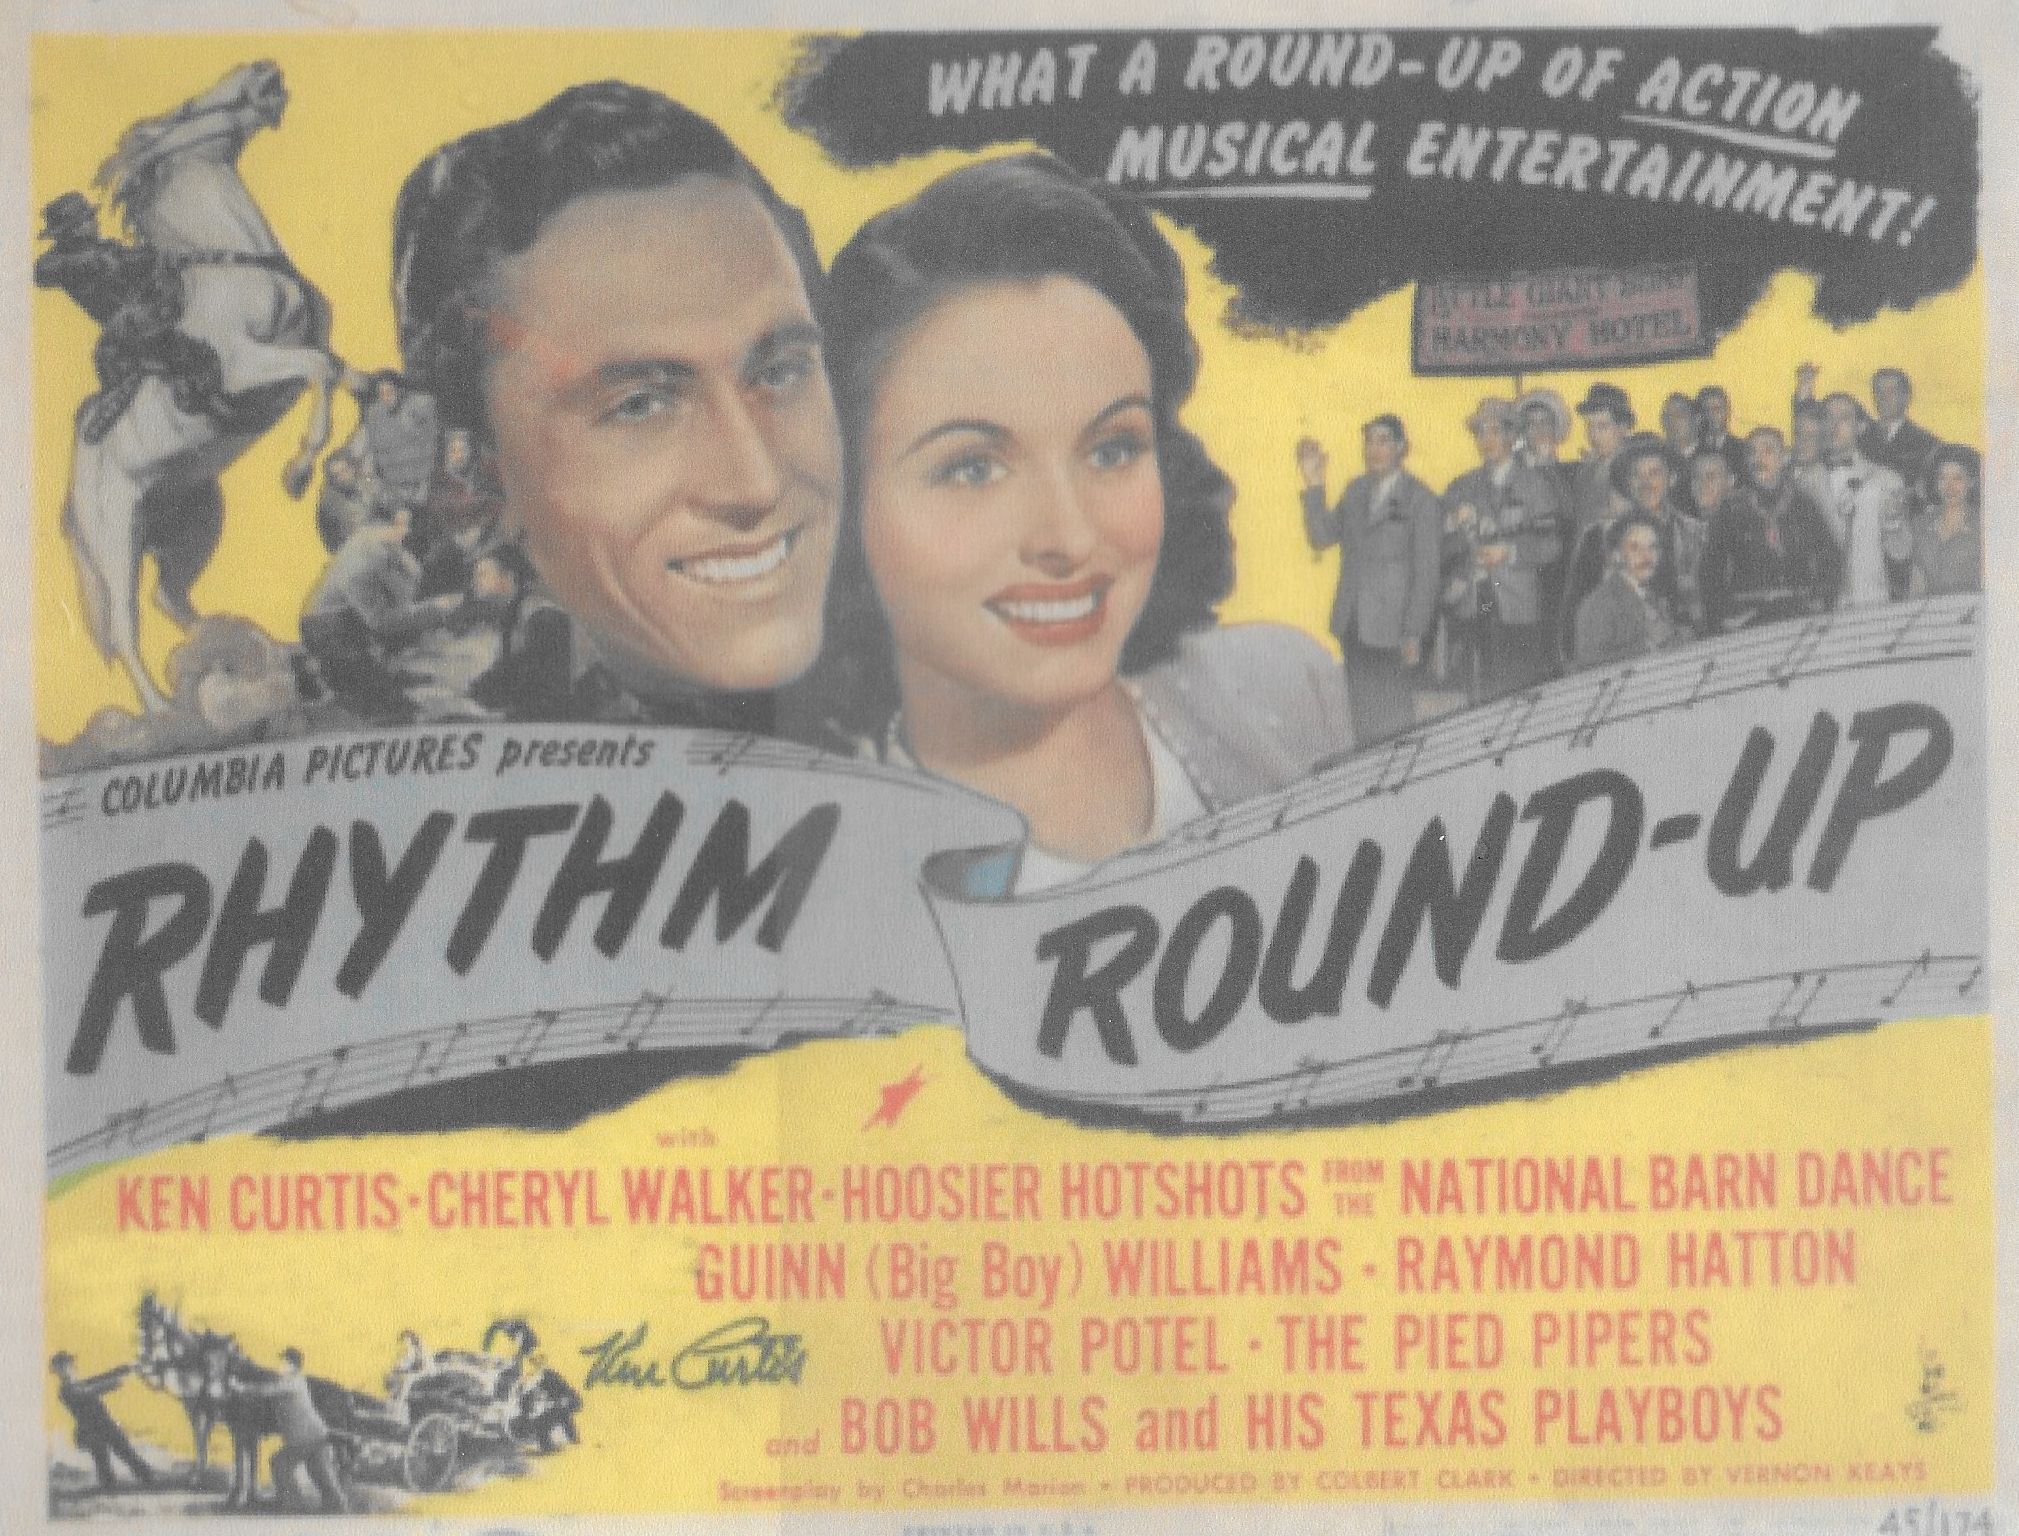 Ken Curtis, Gil Taylor, Paul Trietsch, Ken Trietsch, Cheryl Walker, Charles Ward, and The Pied Pipers in Rhythm Round-Up (1945)